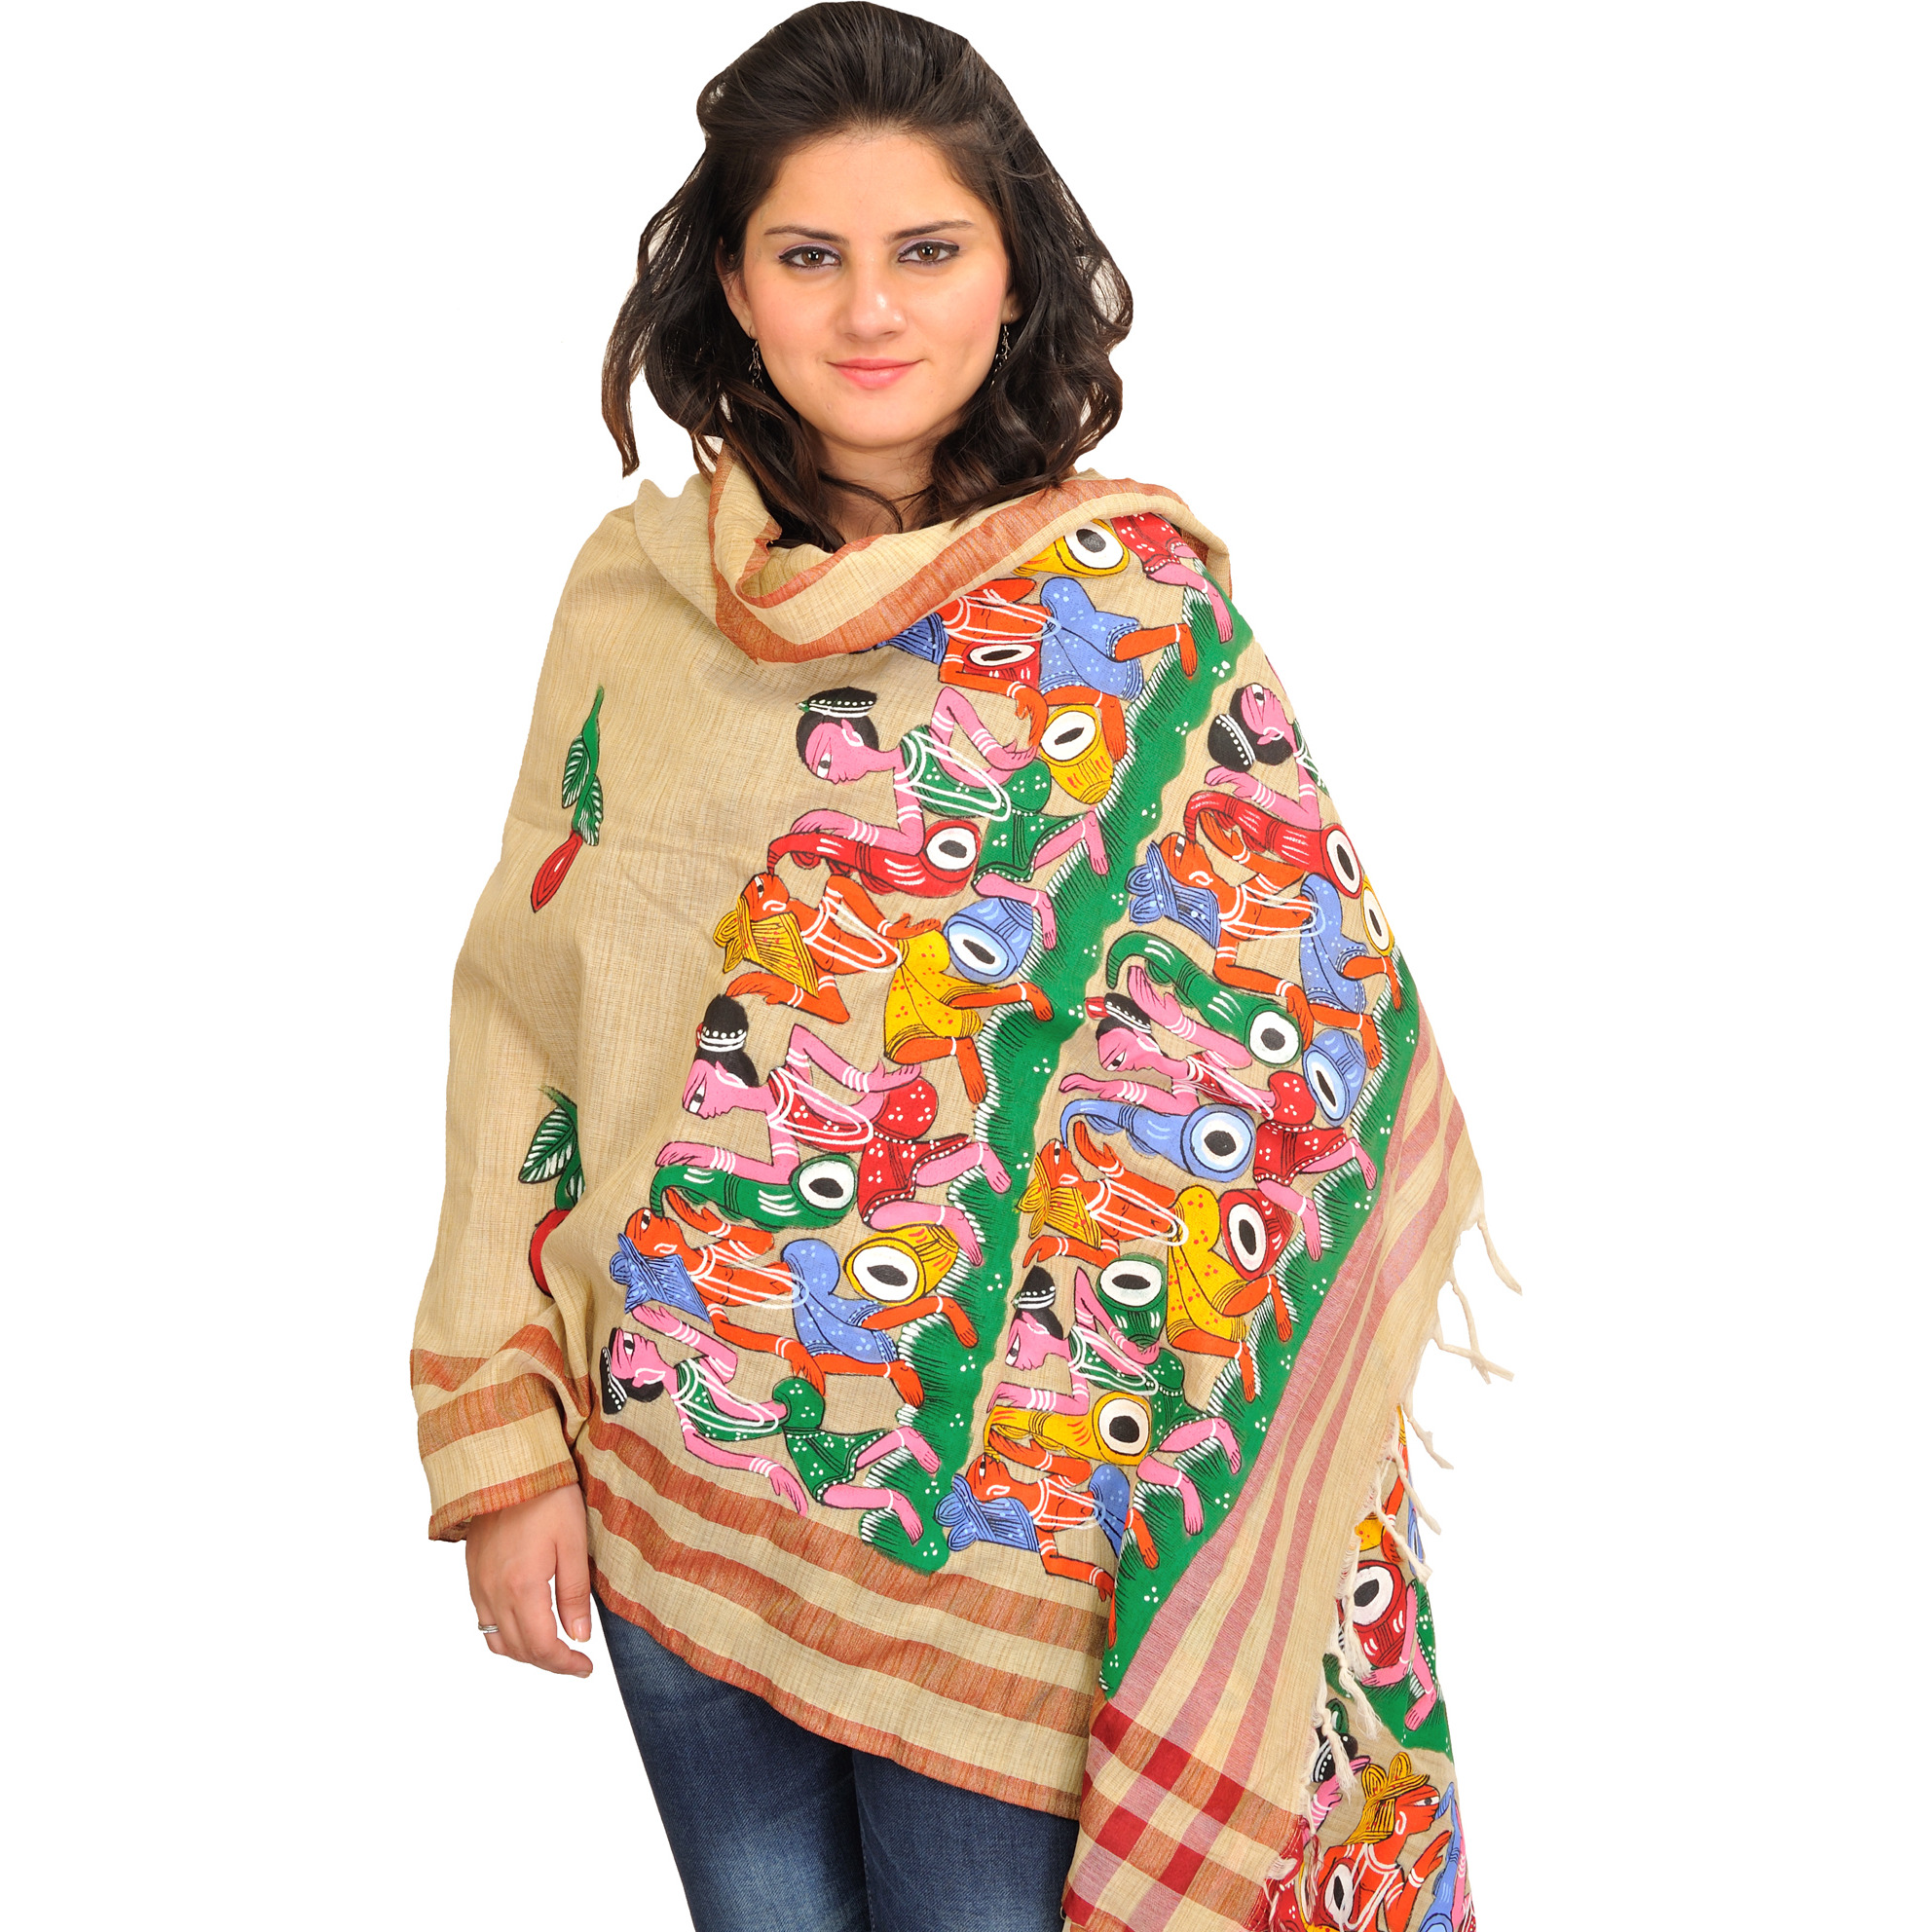 Almond-Oil Dupatta from Bengal with Painted Folk Motifs